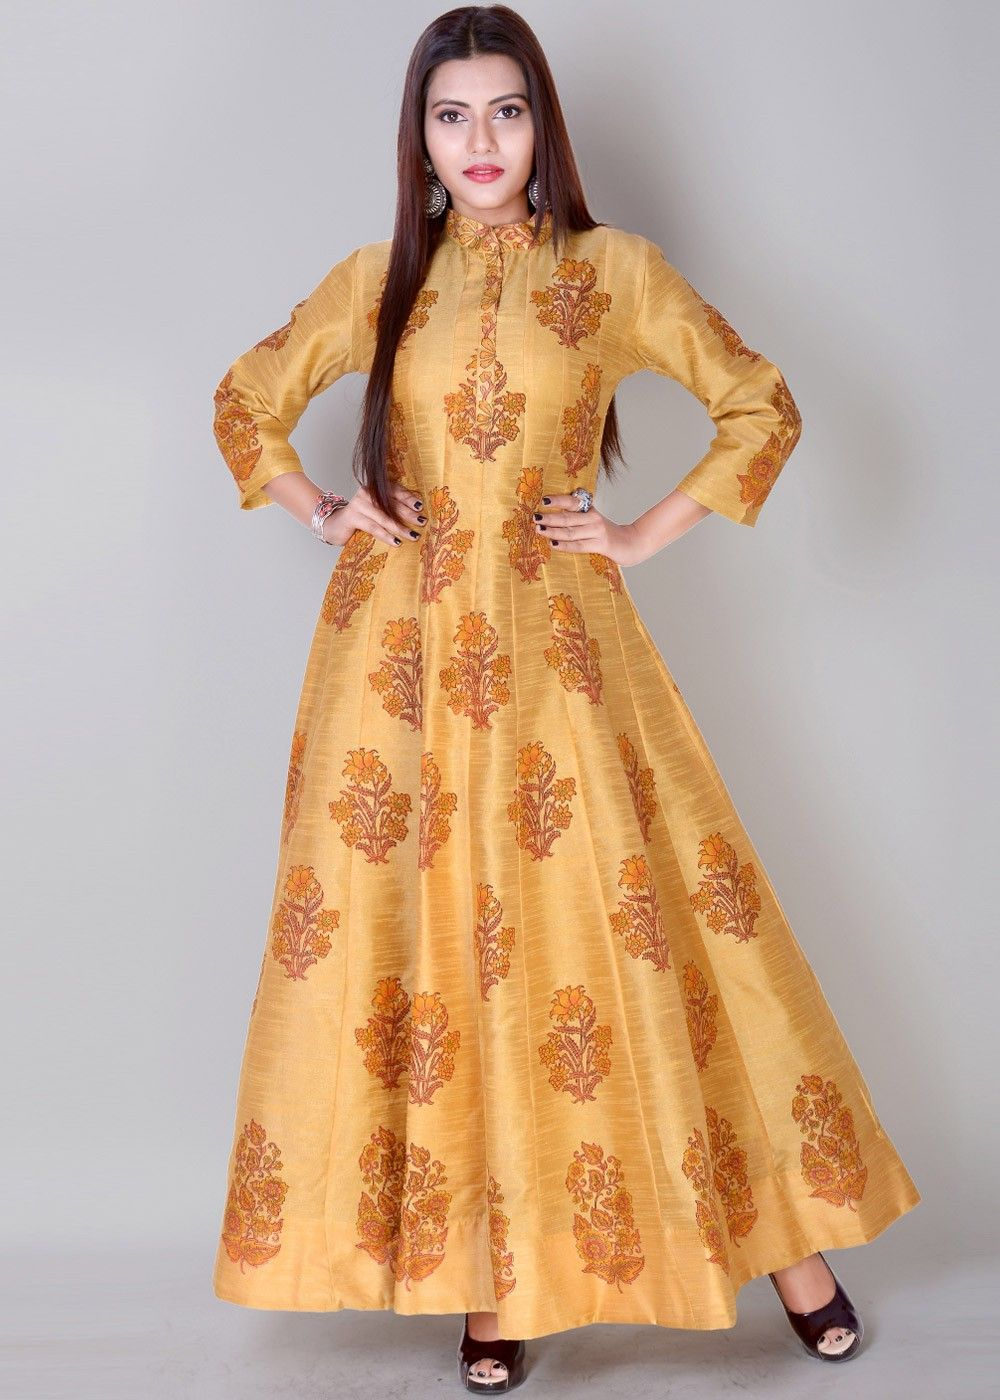 5f71aa9b0ba2 Readymade #Yellow Printed Indian #Gown in Dupion #Silk | Traditional ...